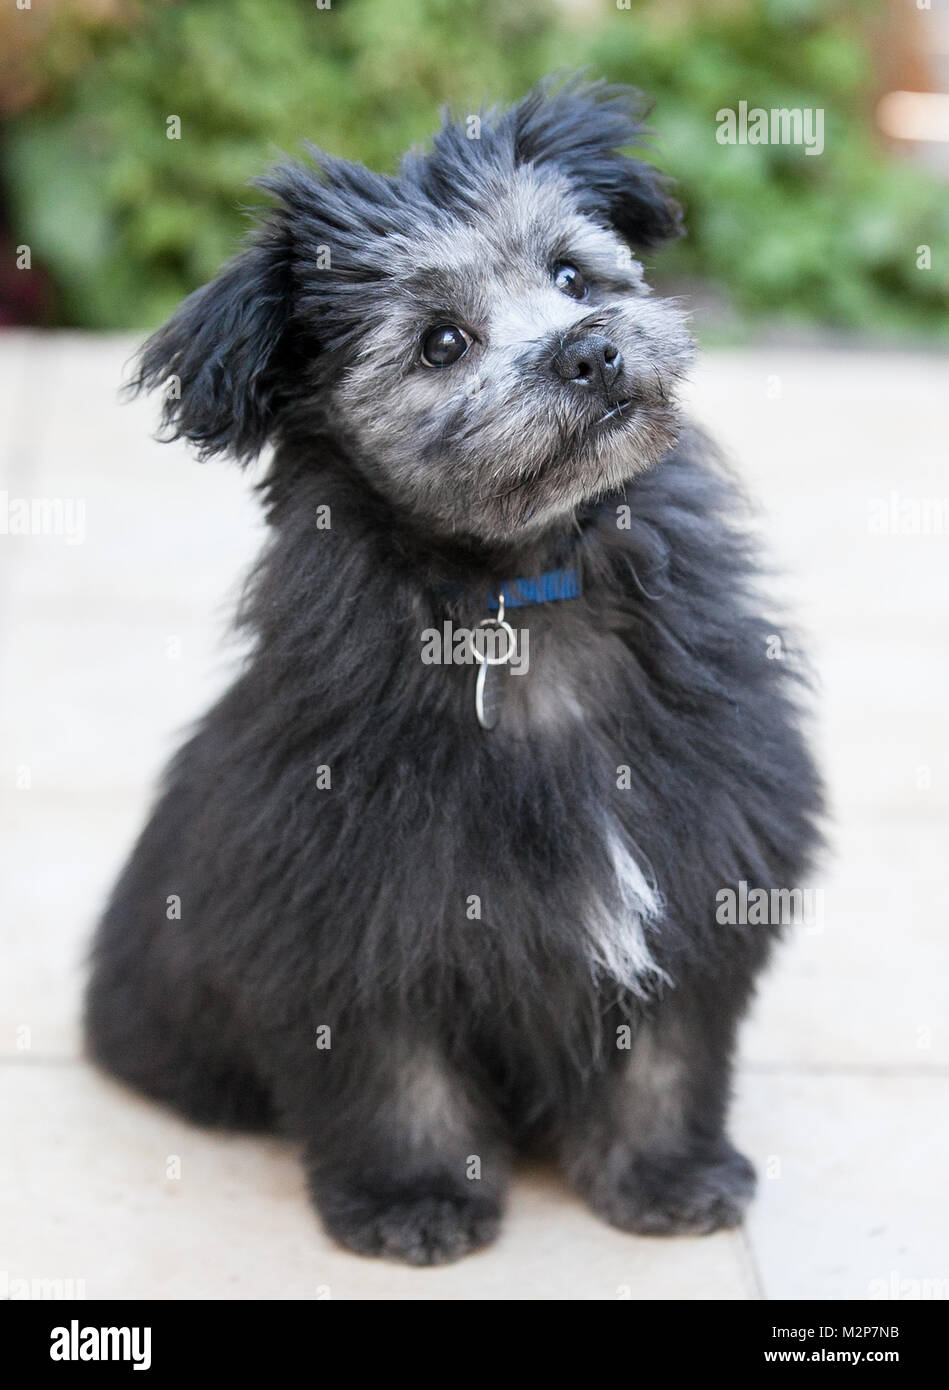 A Maltese Crossed With Shih Tzu Crossed With Pomeranian Puppy Stock Photo Alamy